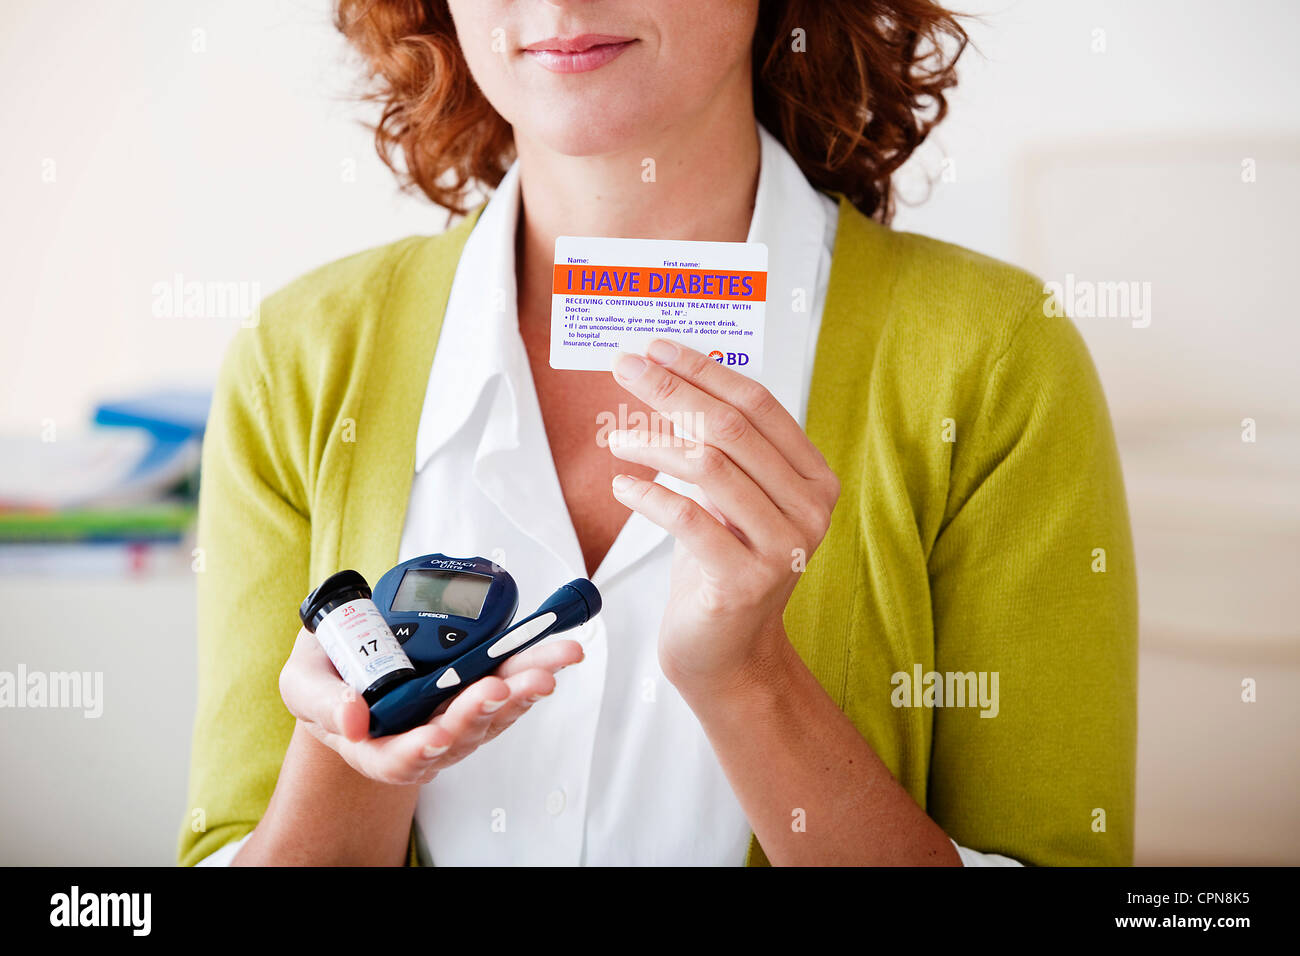 TEST FOR DIABETES, WOMAN - Stock Image